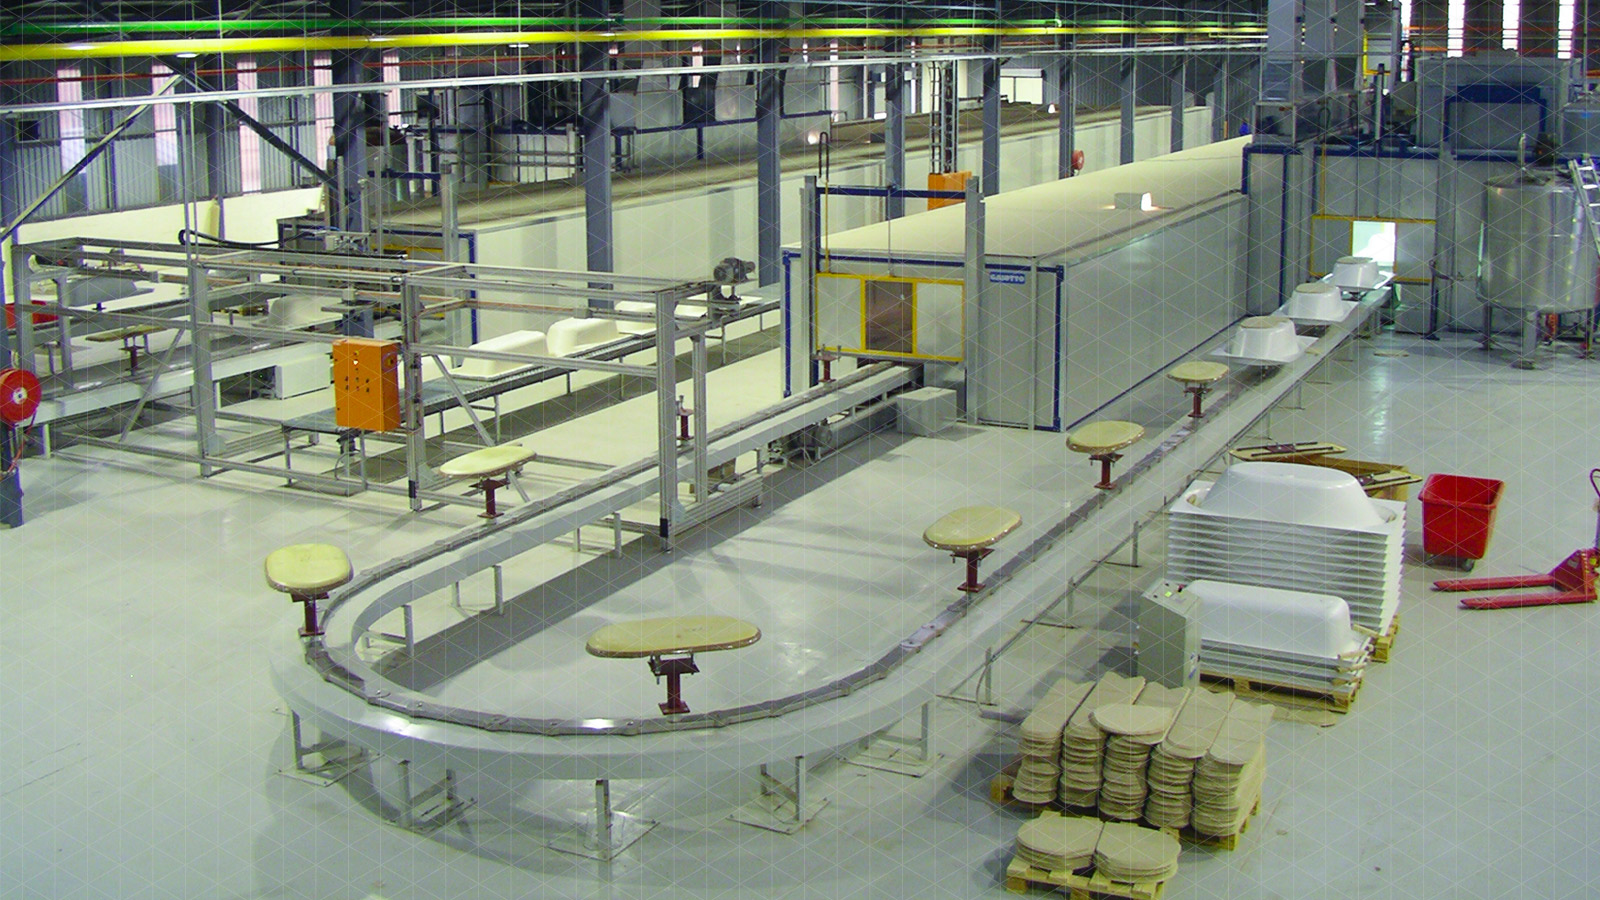 Lines for acrylic sanitaryware production